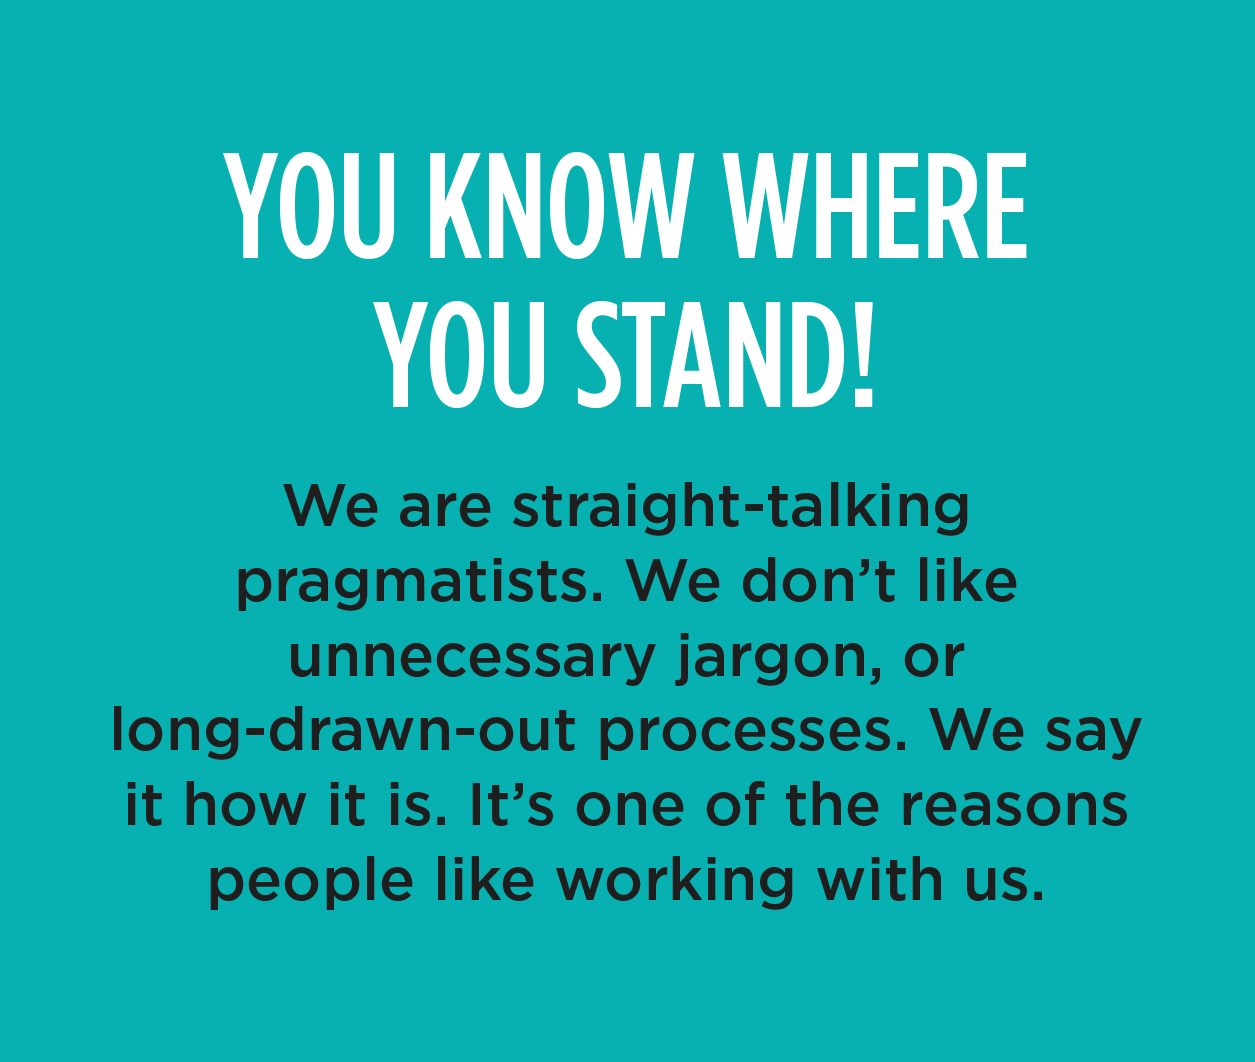 YOU KNOW WHERE YOU STAND! - We are straight-talking pragmatists. We don't like unnecessary jargon, or long-drawn-out processes. We say it how it is. It's one of the reasons people like working with us.